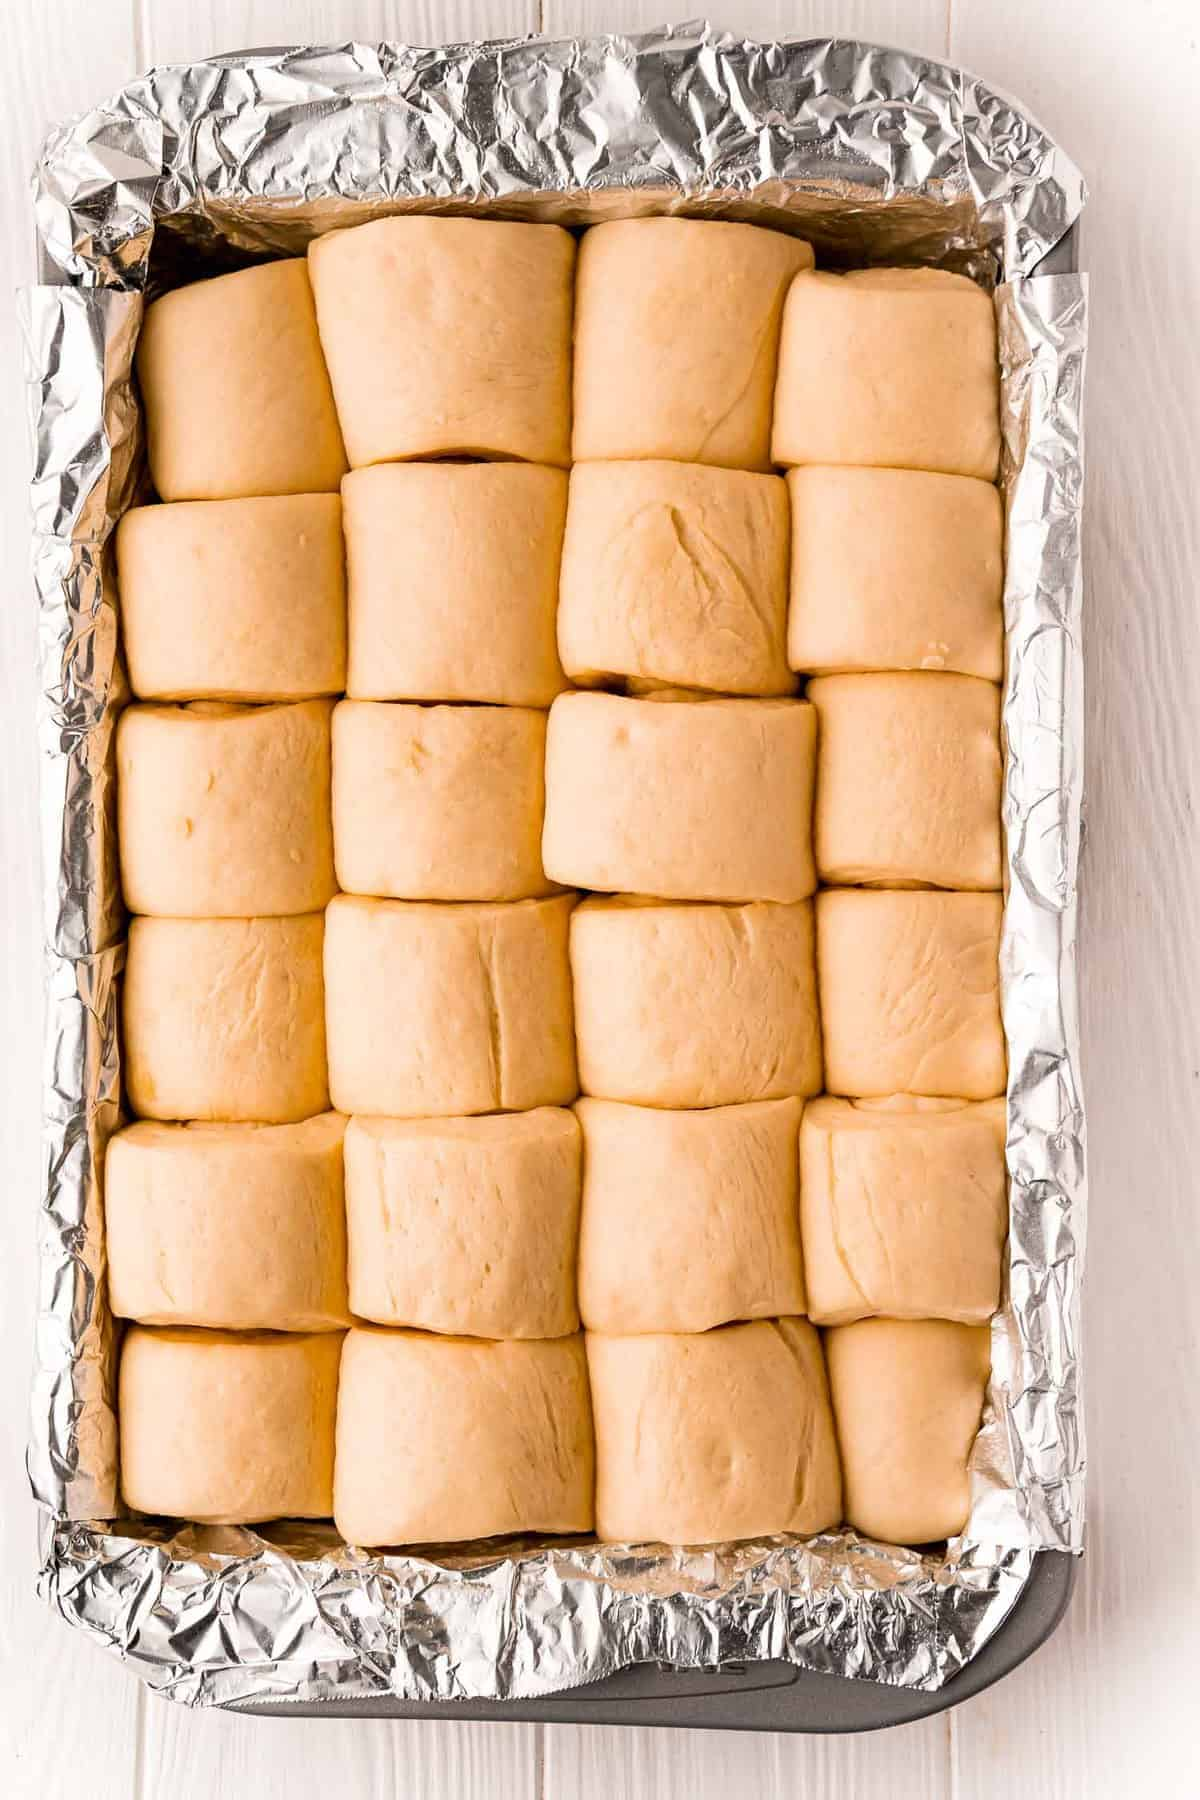 Rolls after rising in pan.